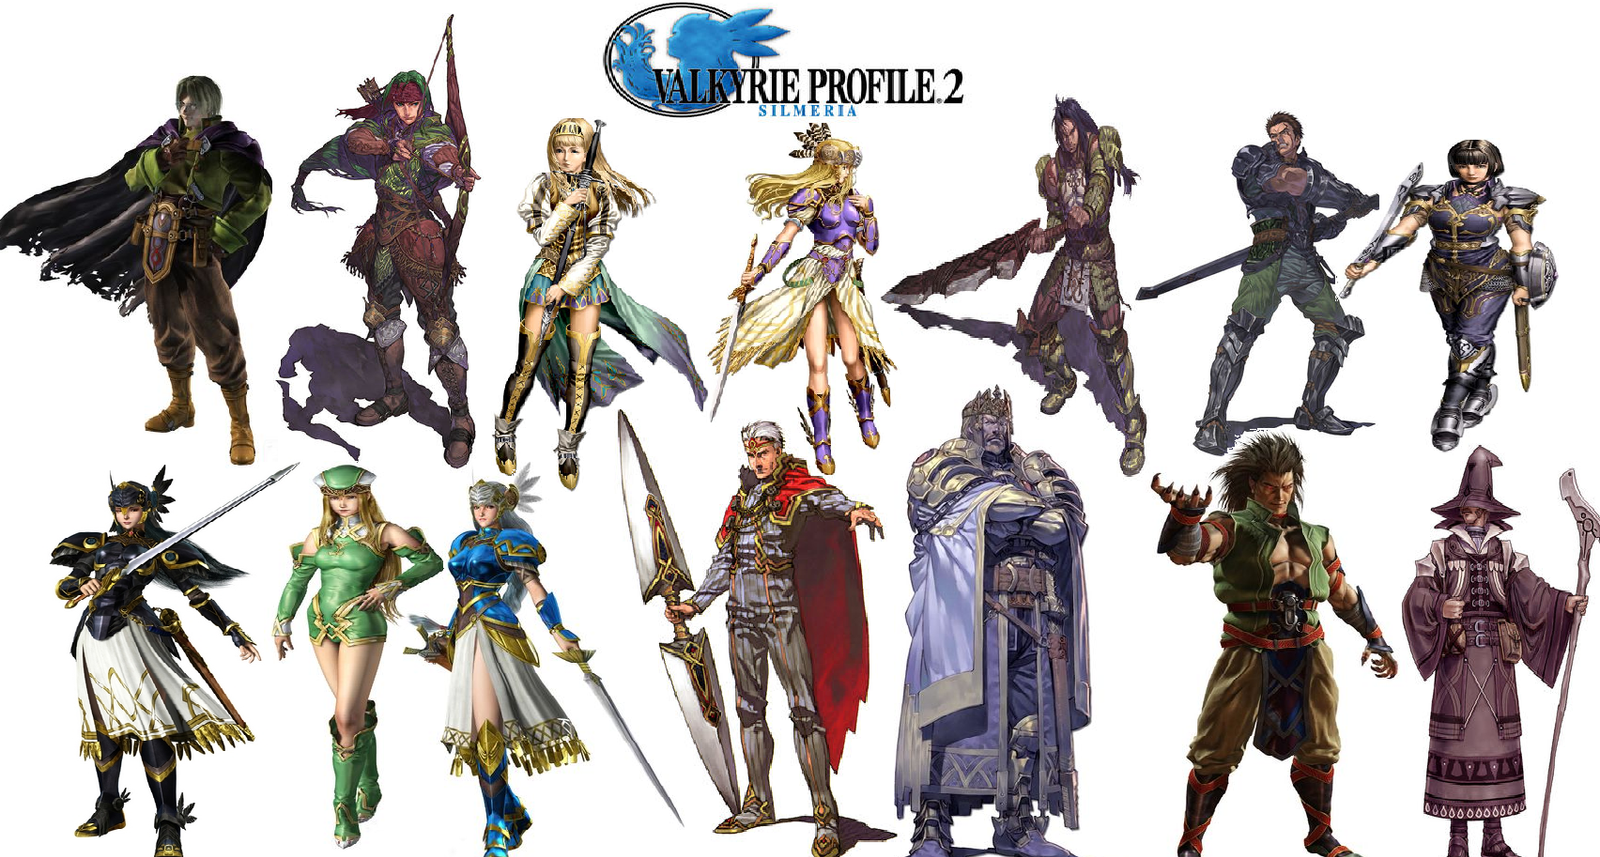 valkyrie profile 2 request by paperemonga on deviantart